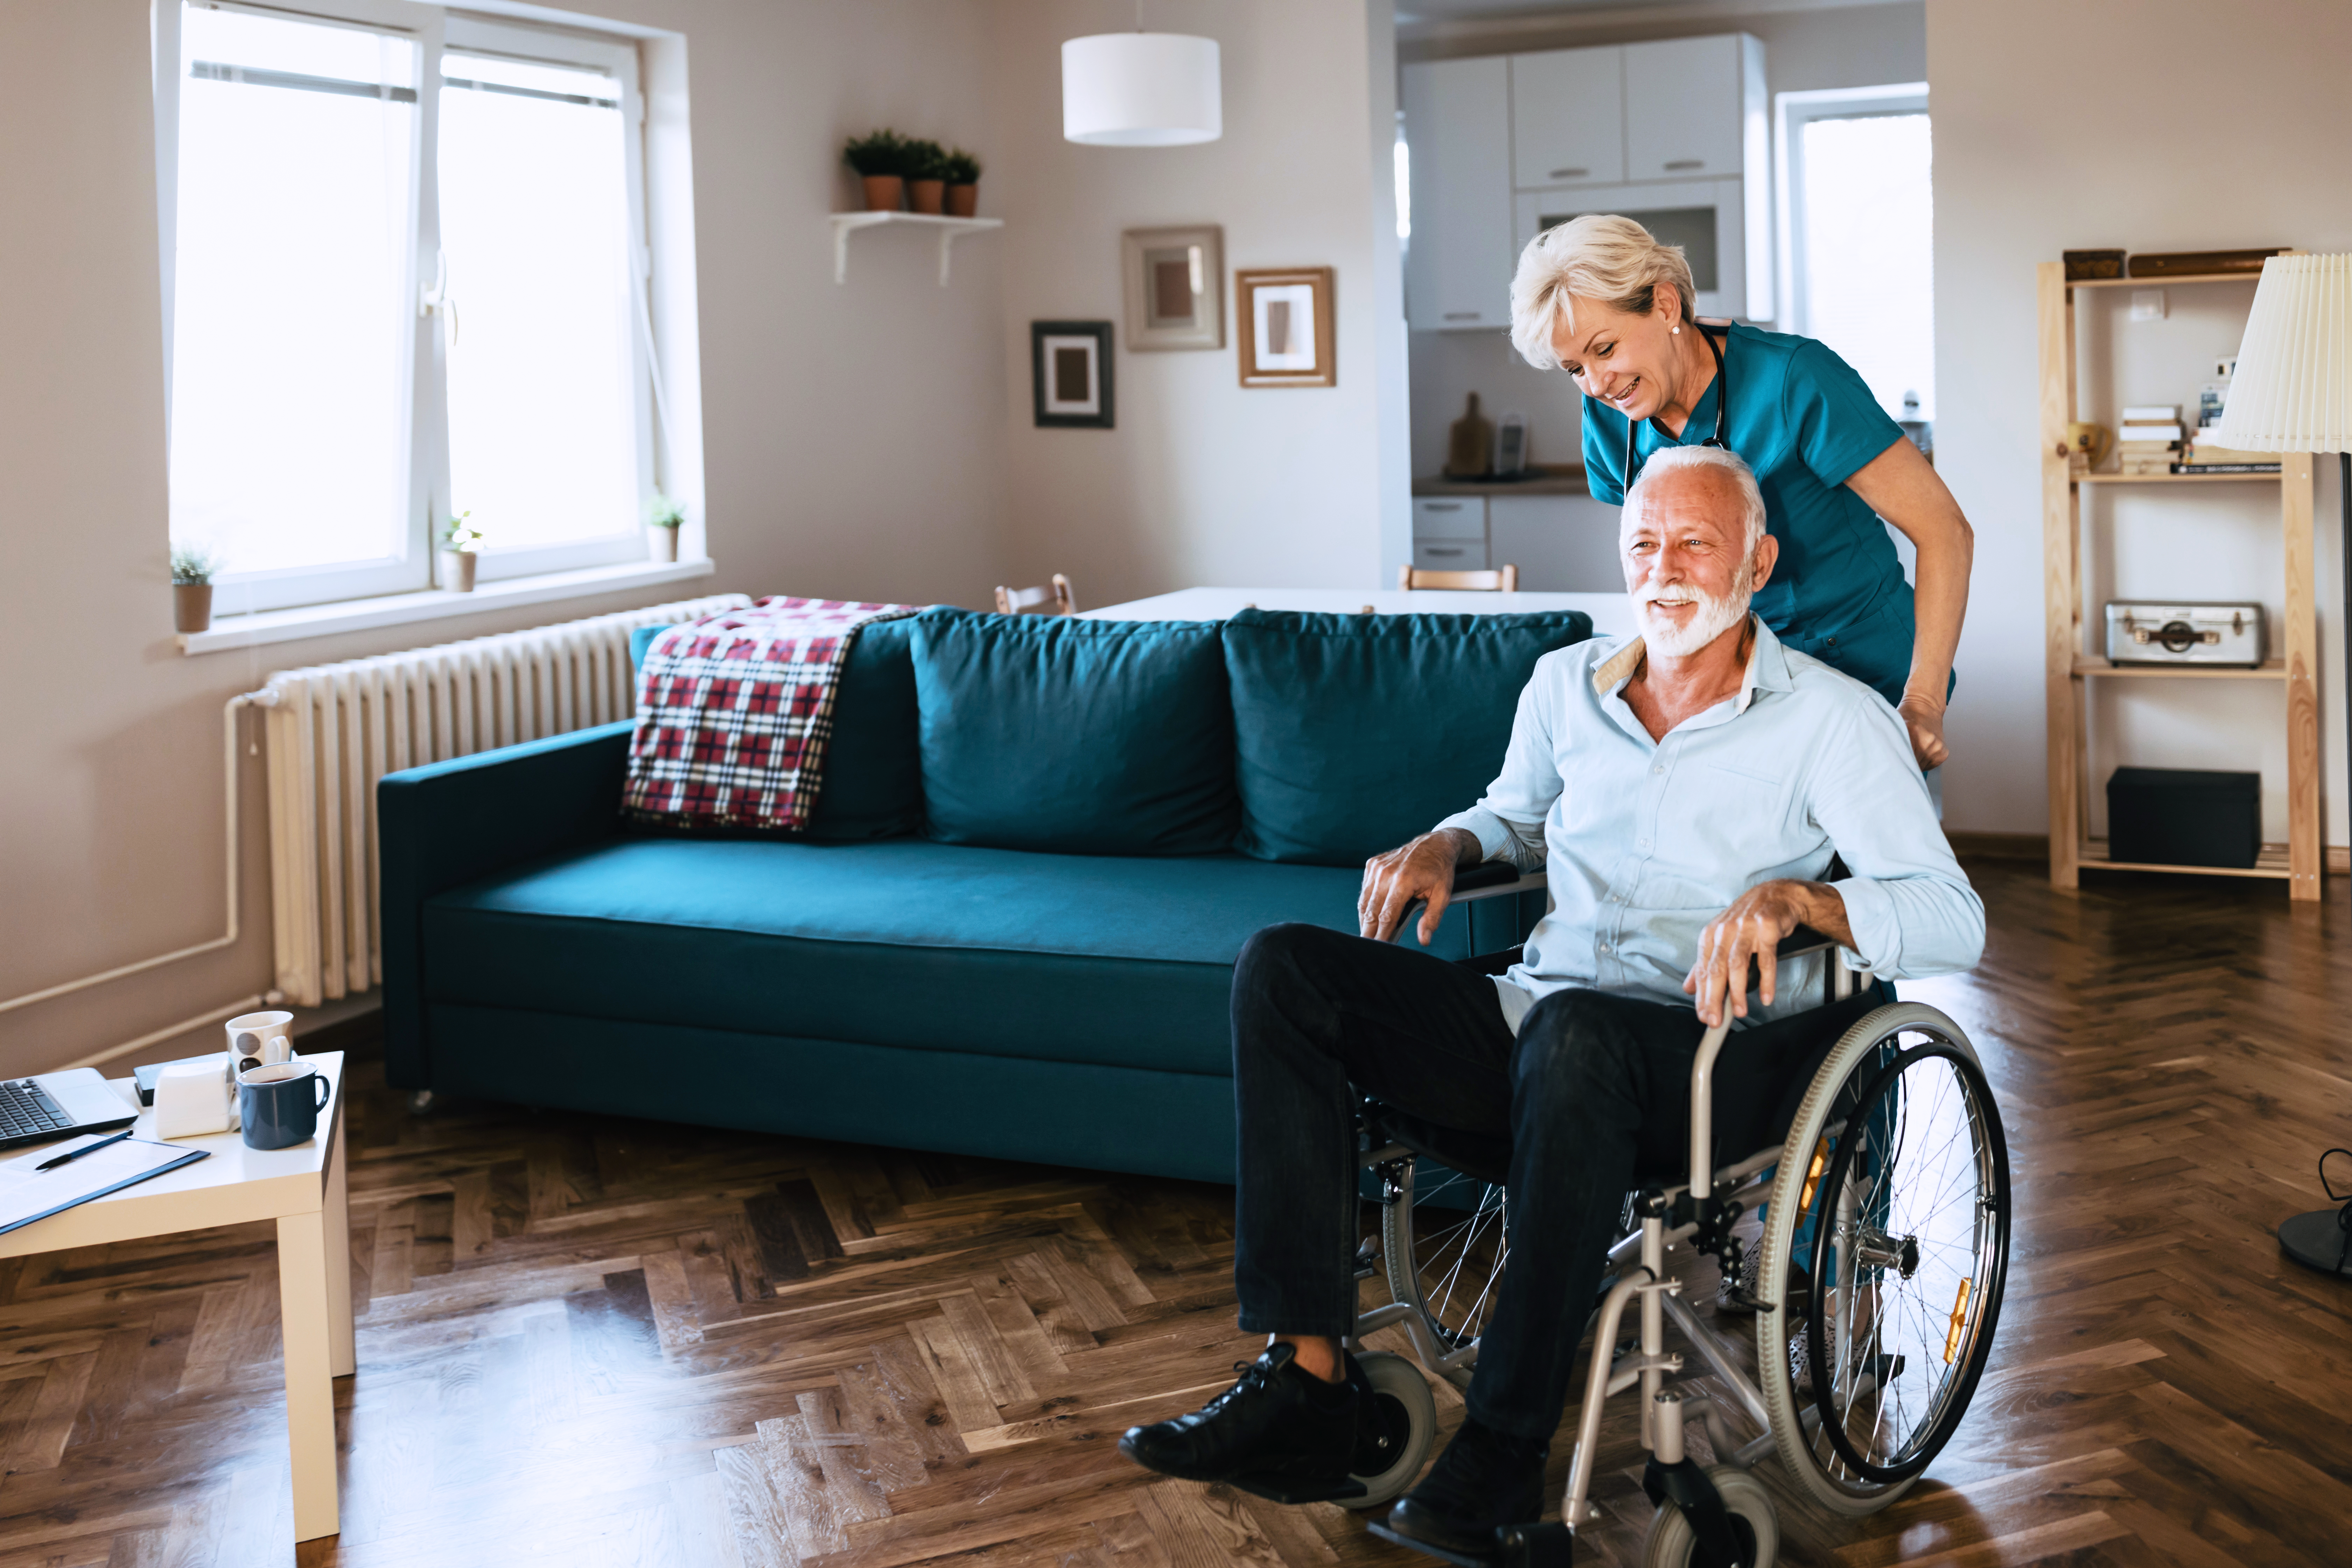 Purchasing Guide to Mobility Aids - Selecting The Right Mobility Aid